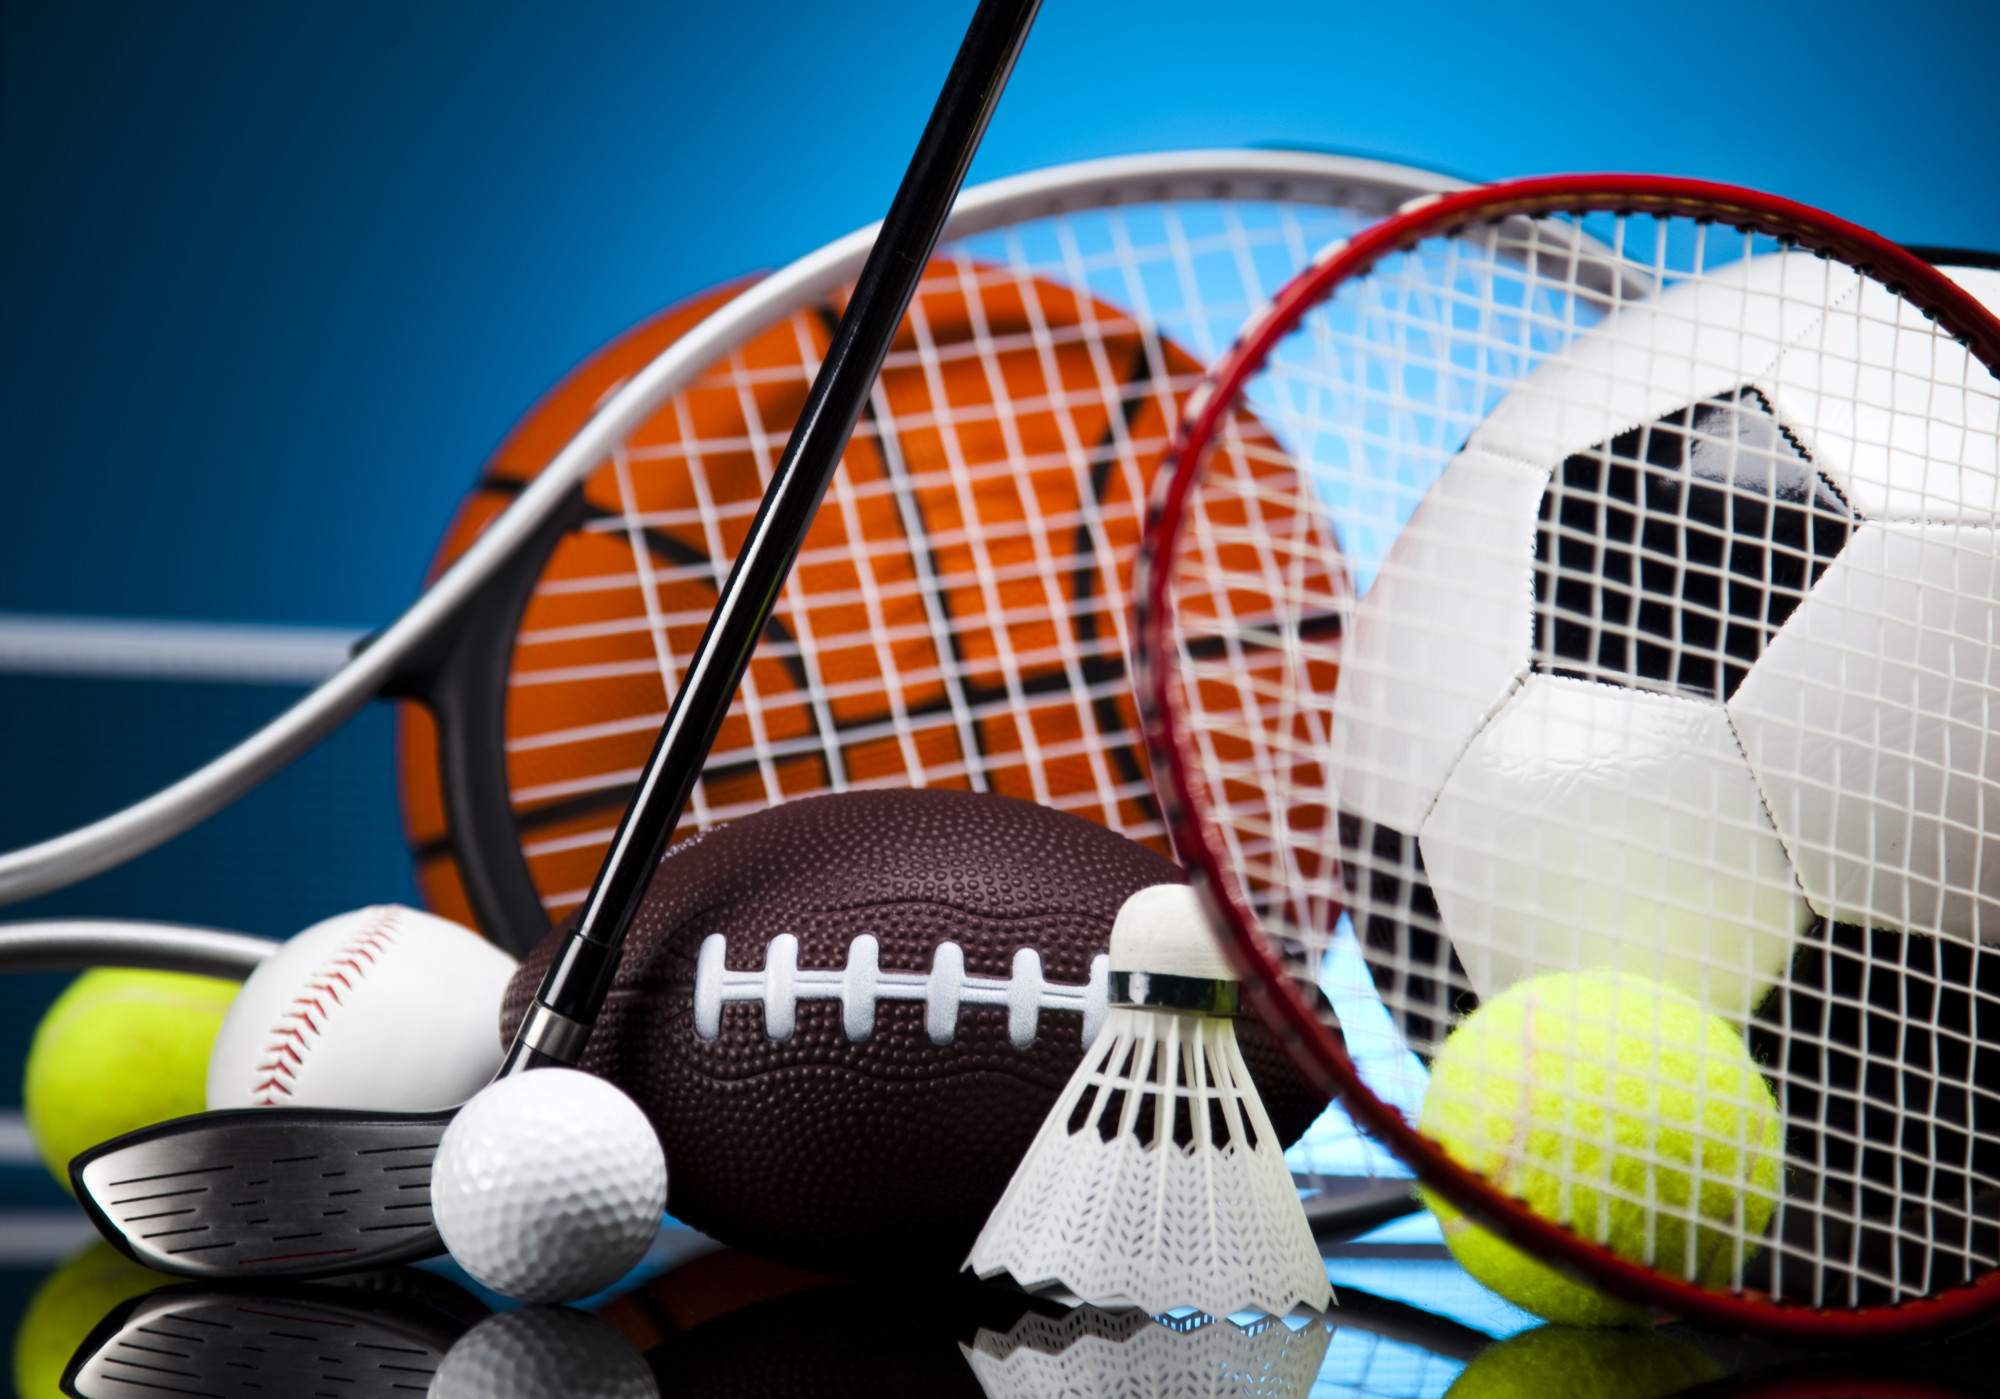 Sporting Goods Products